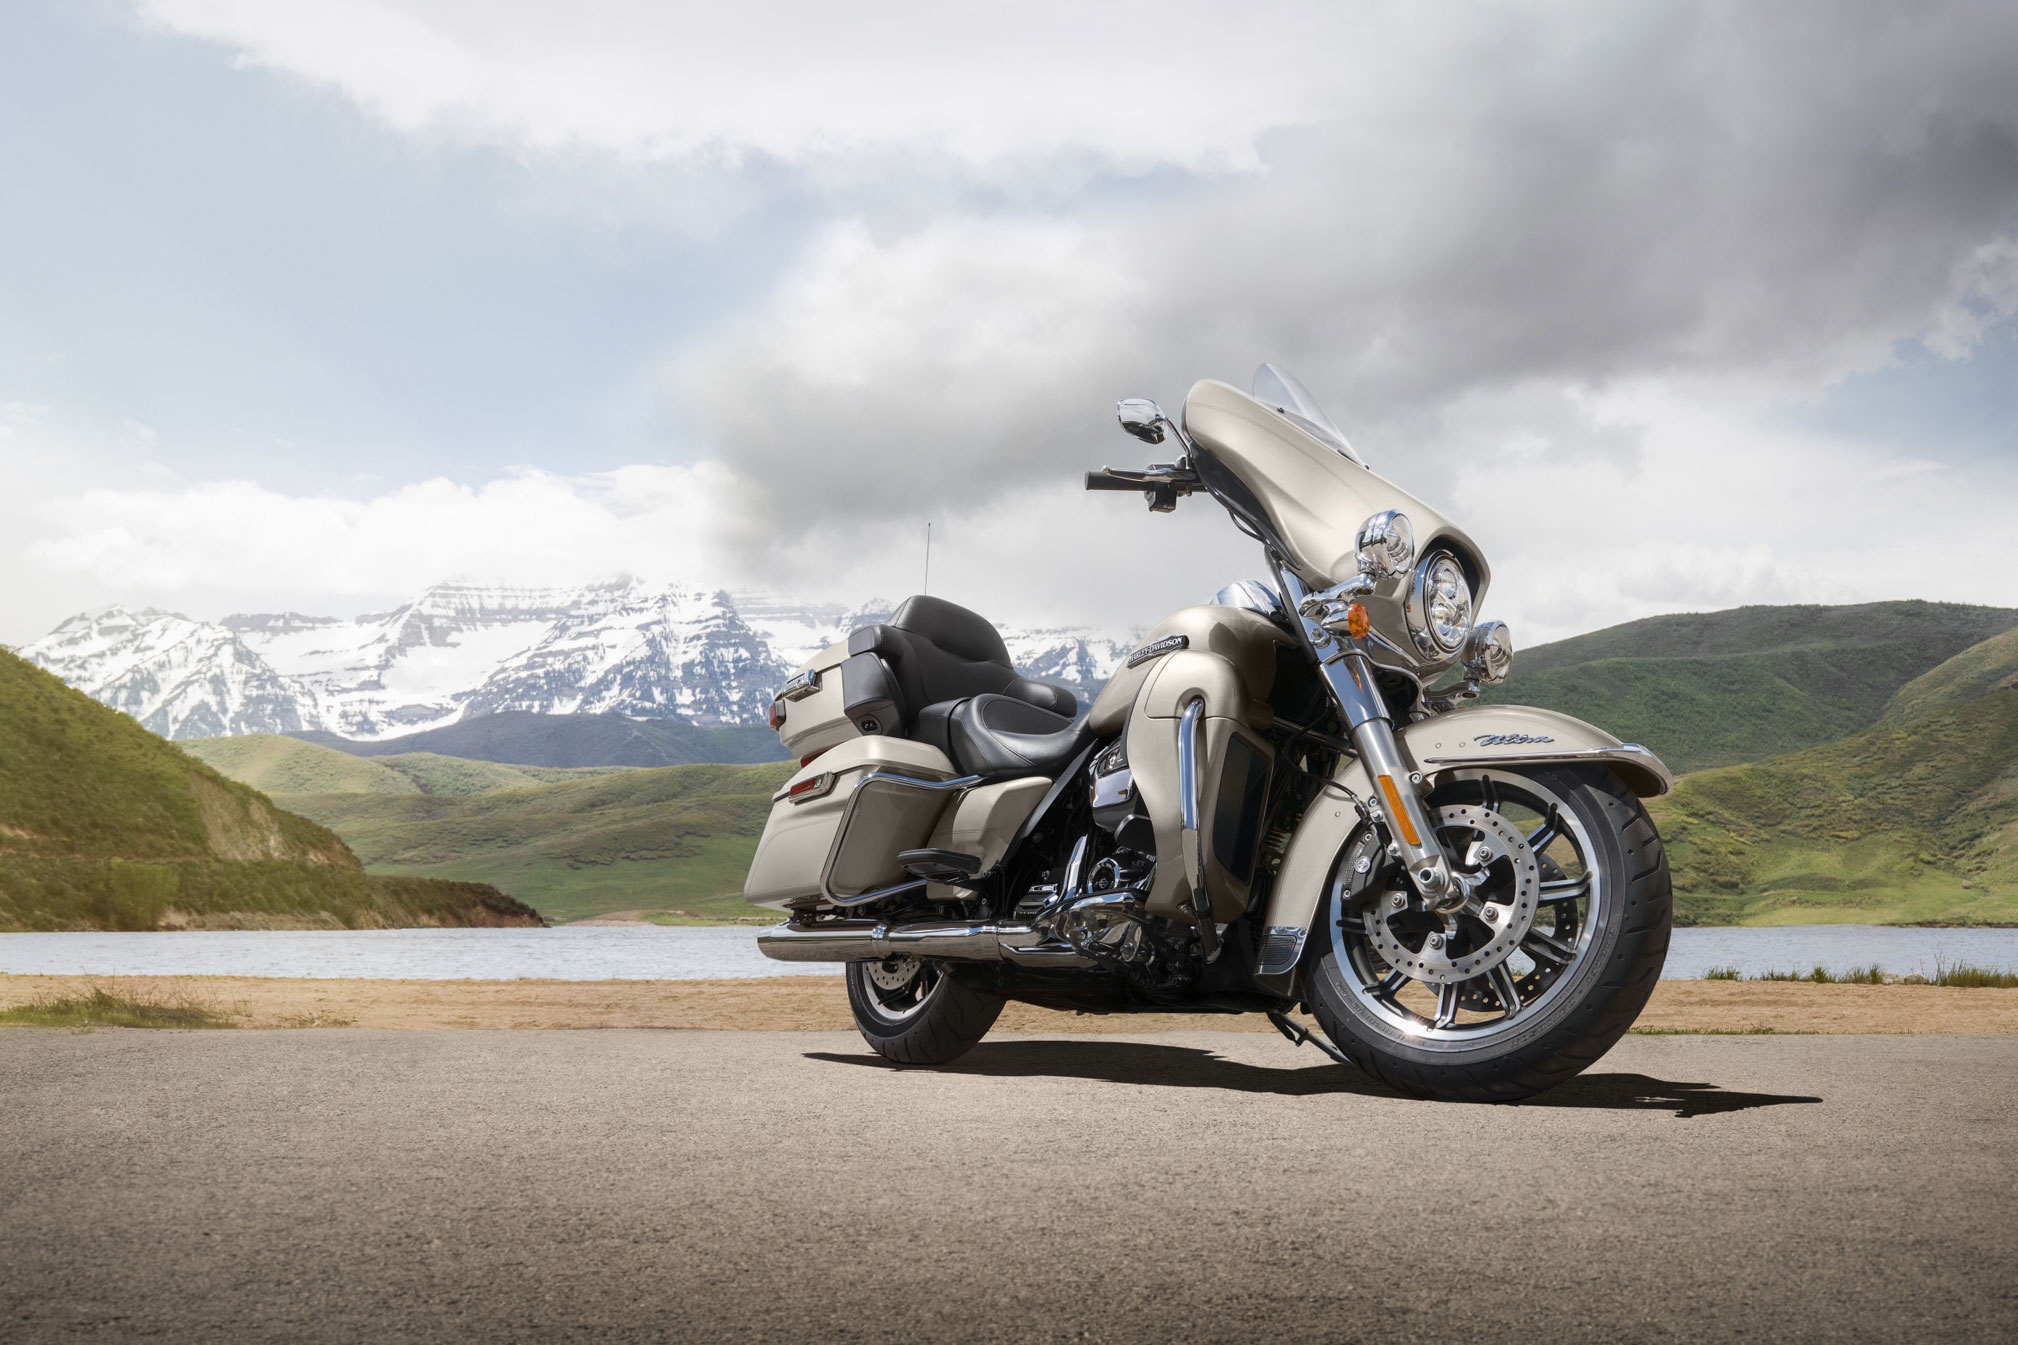 2018 Harley-Davidson Electra Glide Ultra Classic Review ...